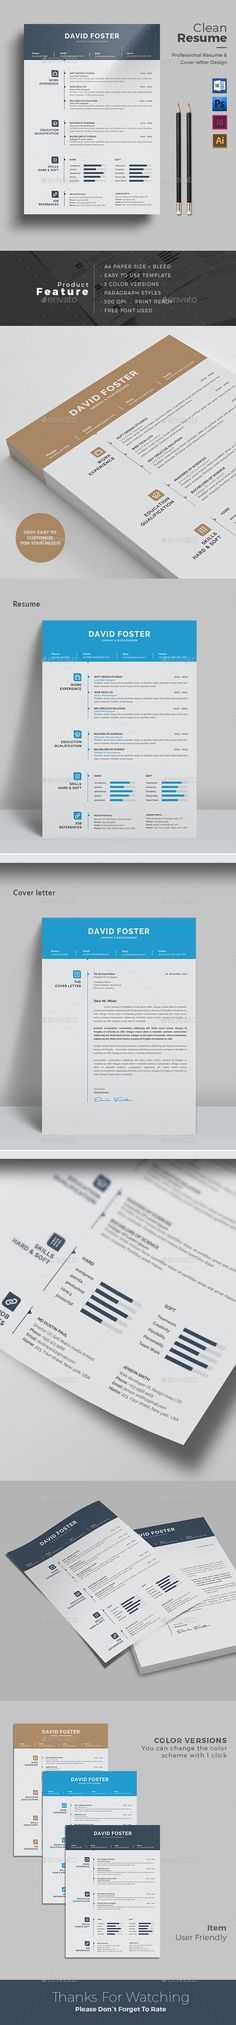 Resume - Resumes Stationery Resume Templates Microsoft Word - resume on word